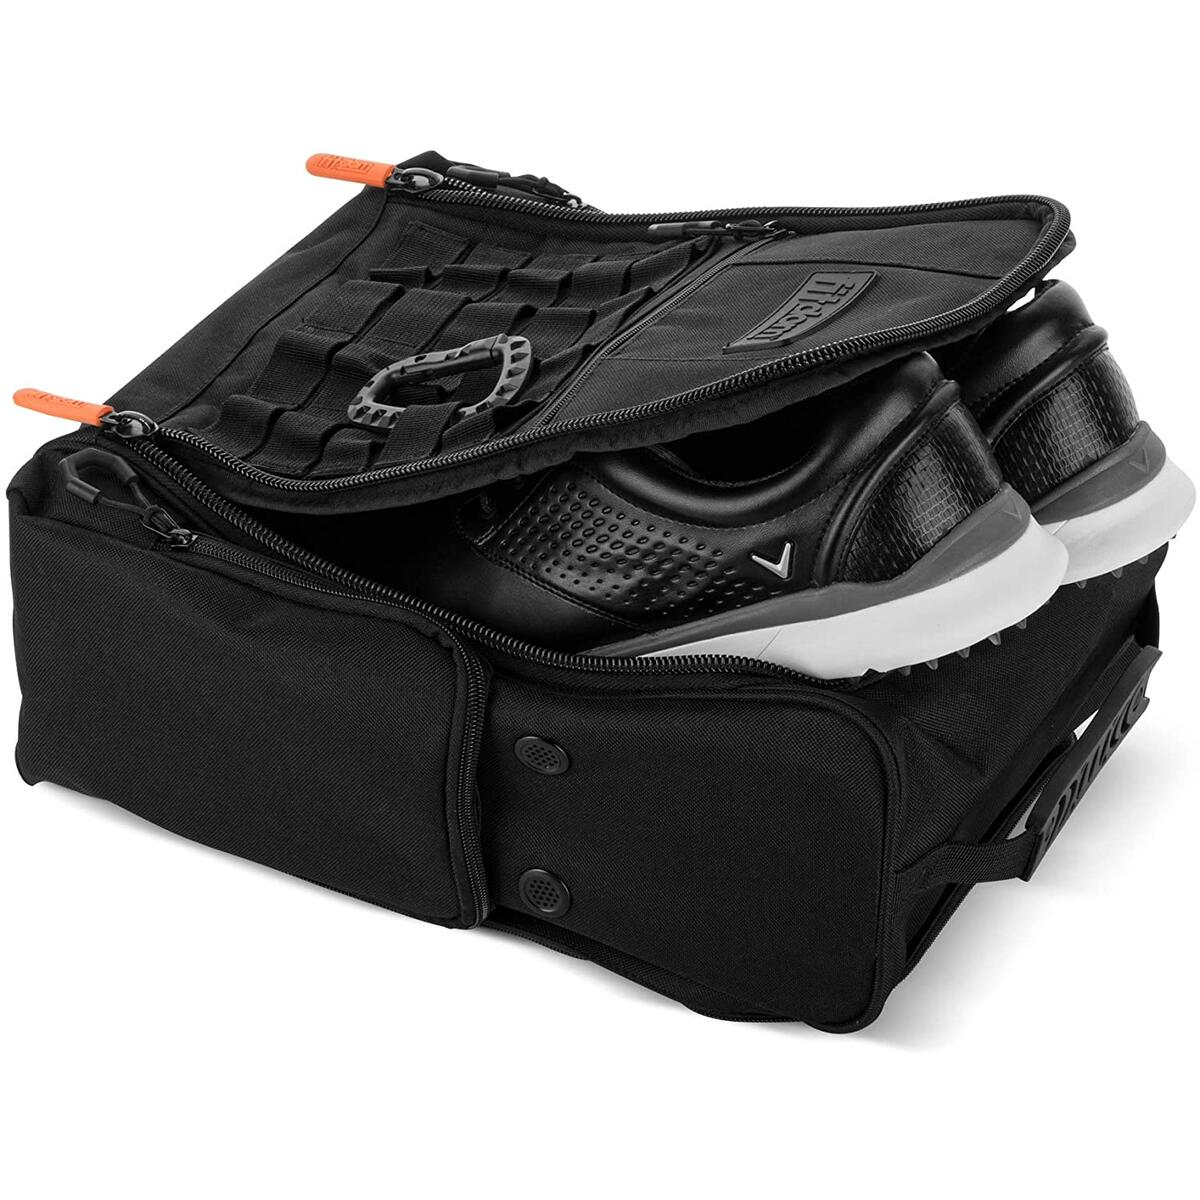 Fitdom Golf Shoe Bag - Tactical Style Zippered Black Shoe Carrier Bags with Ventilation & Multiple Outside Pockets for Socks Tees Gloves Brush & Other Accessories ETC Storage. Perfect for Women & Men